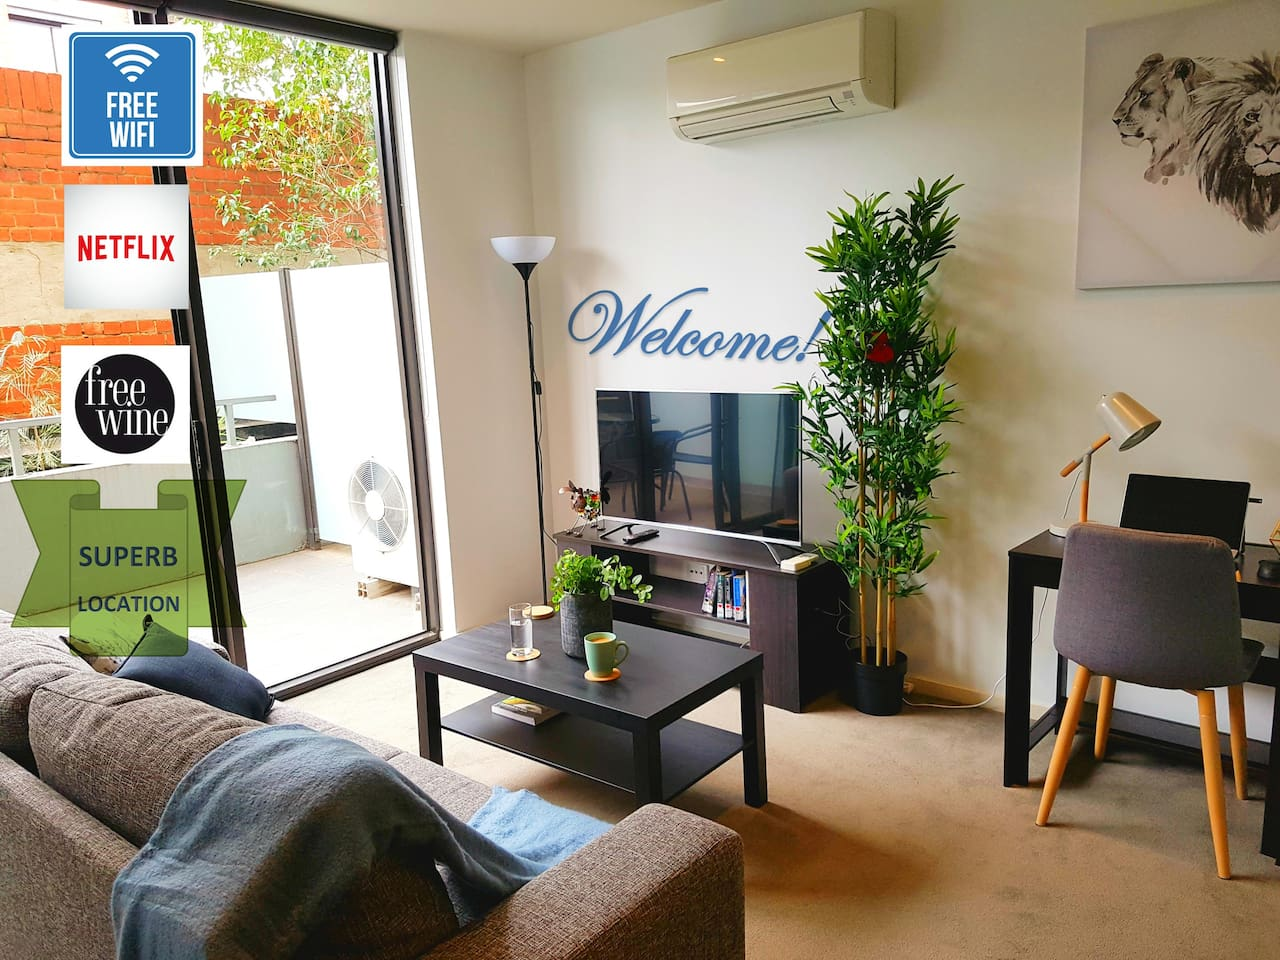 Experience Melbourne at our apartment. Includes free Wifi, Netflix and wine.